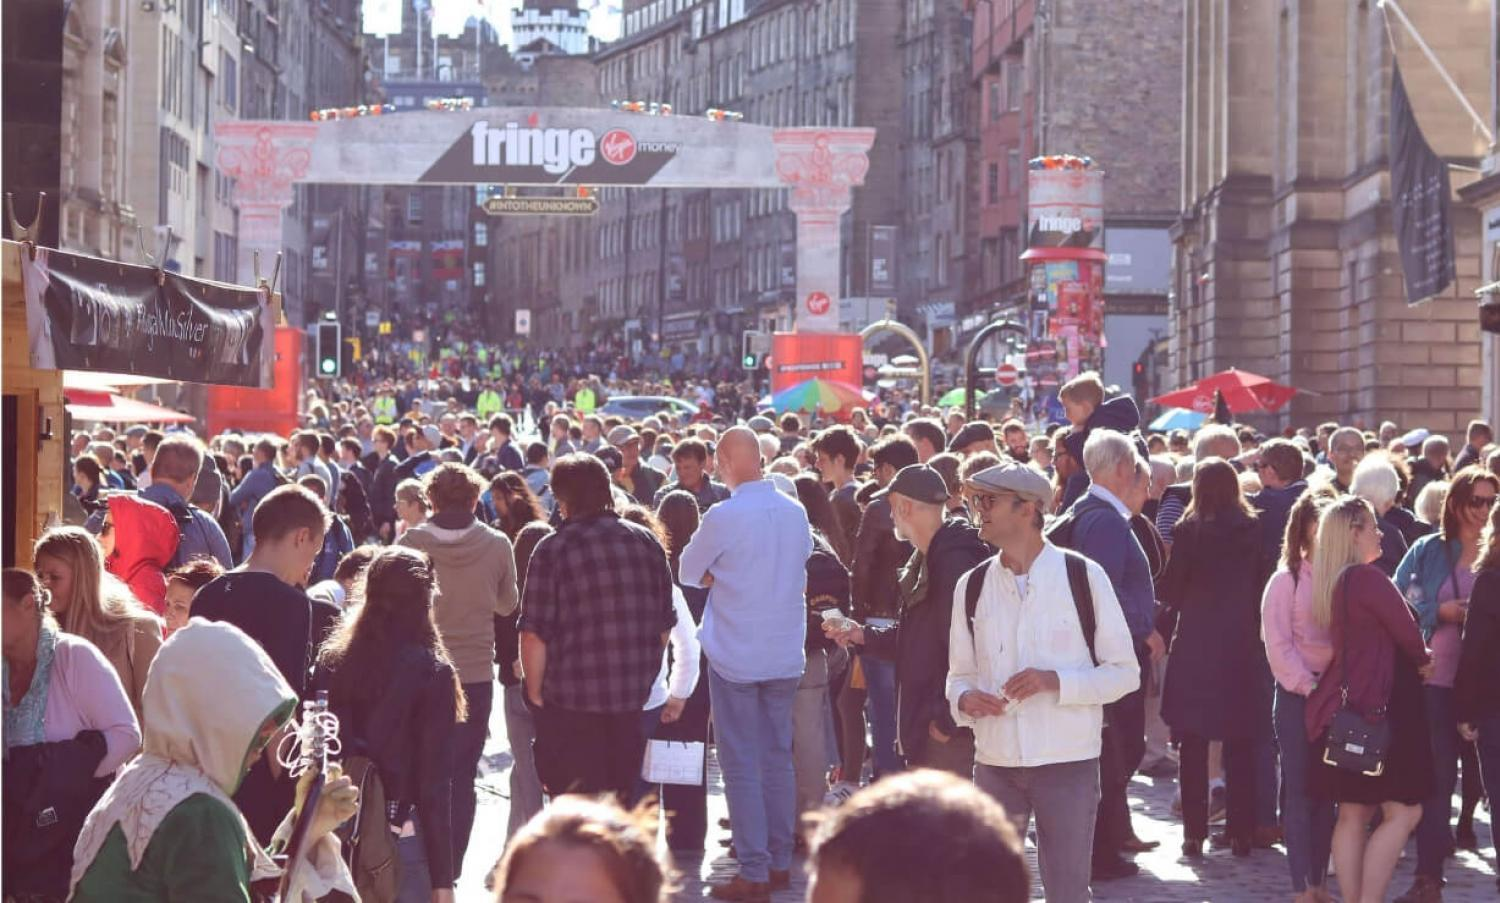 Street events at the Fringe Festival, High Street